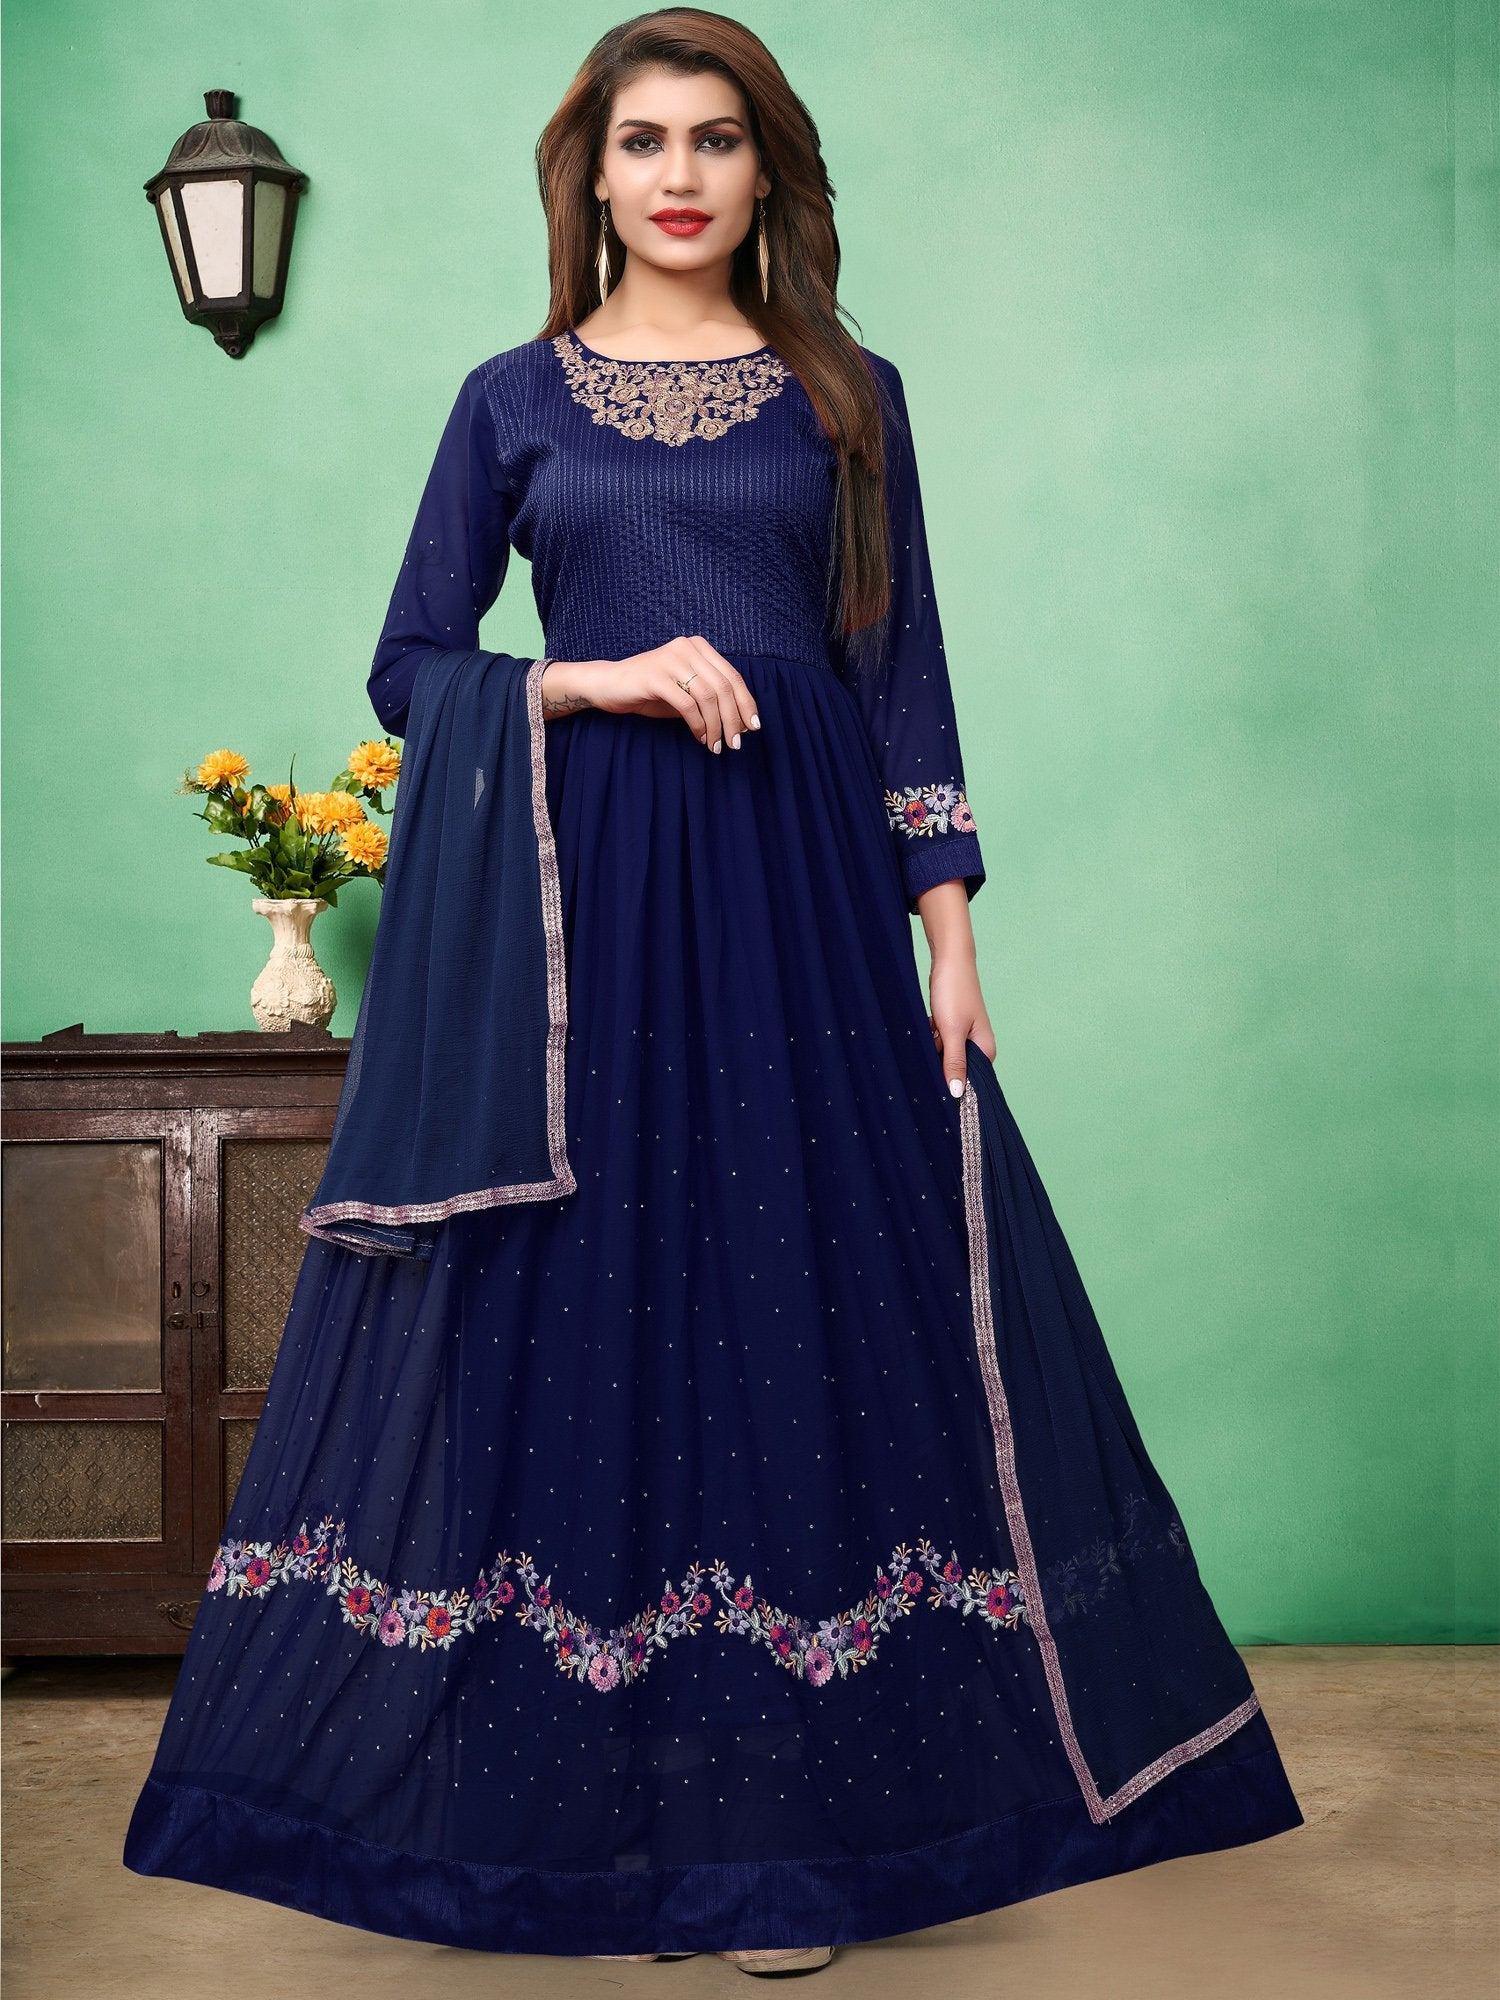 c16b4760f6 Buy Blue Color Faux Georgette Semi Stitched Salwar | Zinnga